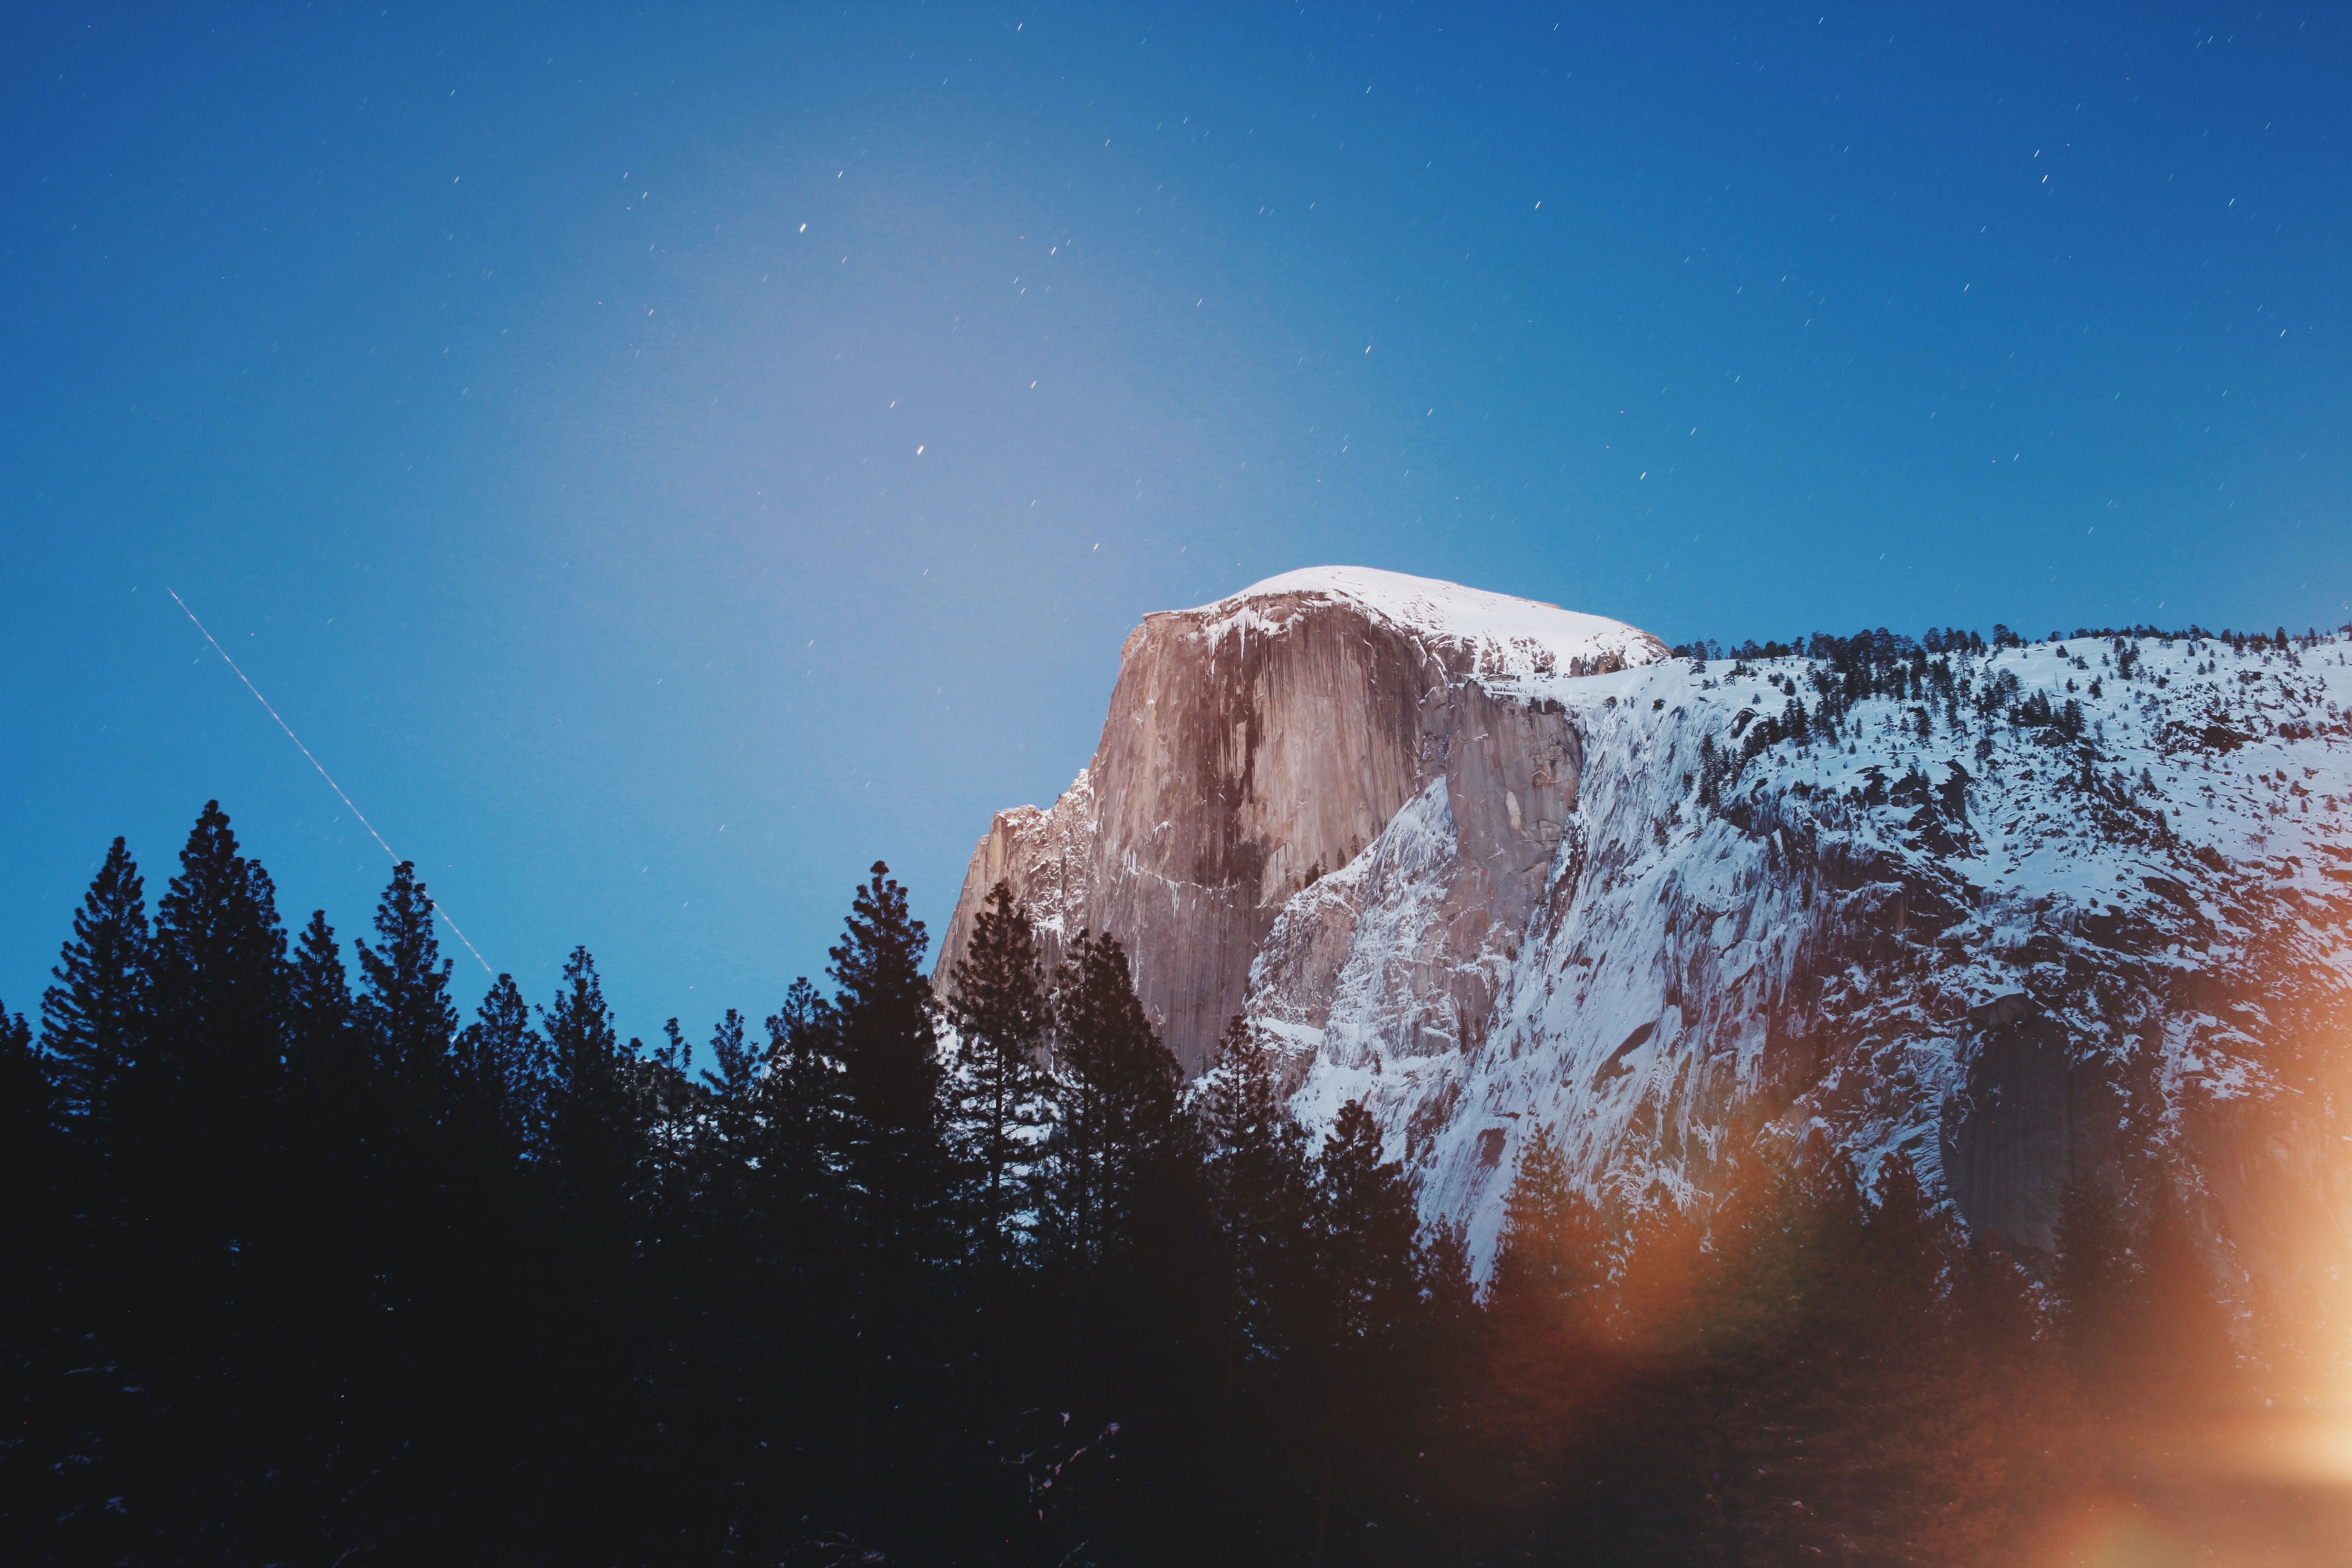 The Half Dome summit in Yosemite Valley under starry evening sky